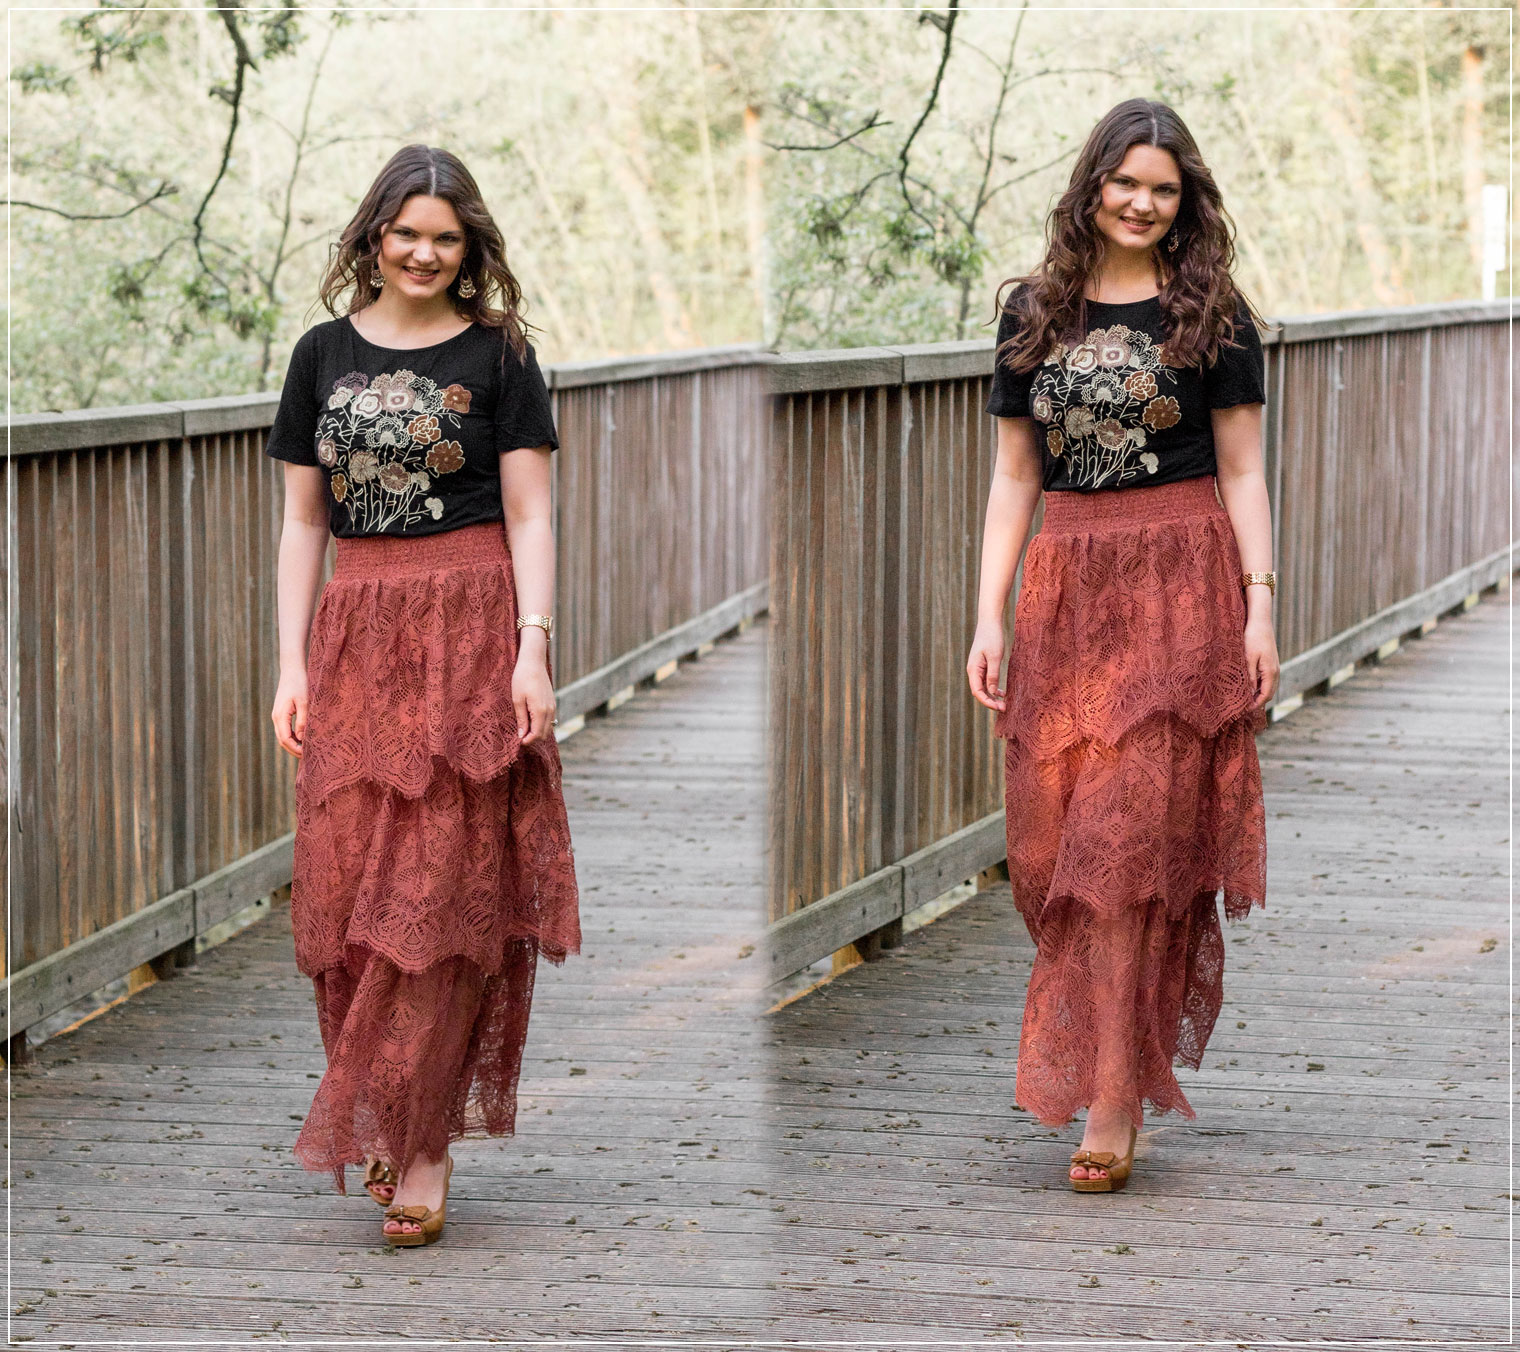 Boho-Style, Boho-Rock, Midi-Rock, Festival Look, Sommerlook, Sommeroutfit, Styleguide, Outfitinspiration, Modebloggerin, Fashionbloggerin, Modeblog, Ruhrgebiet